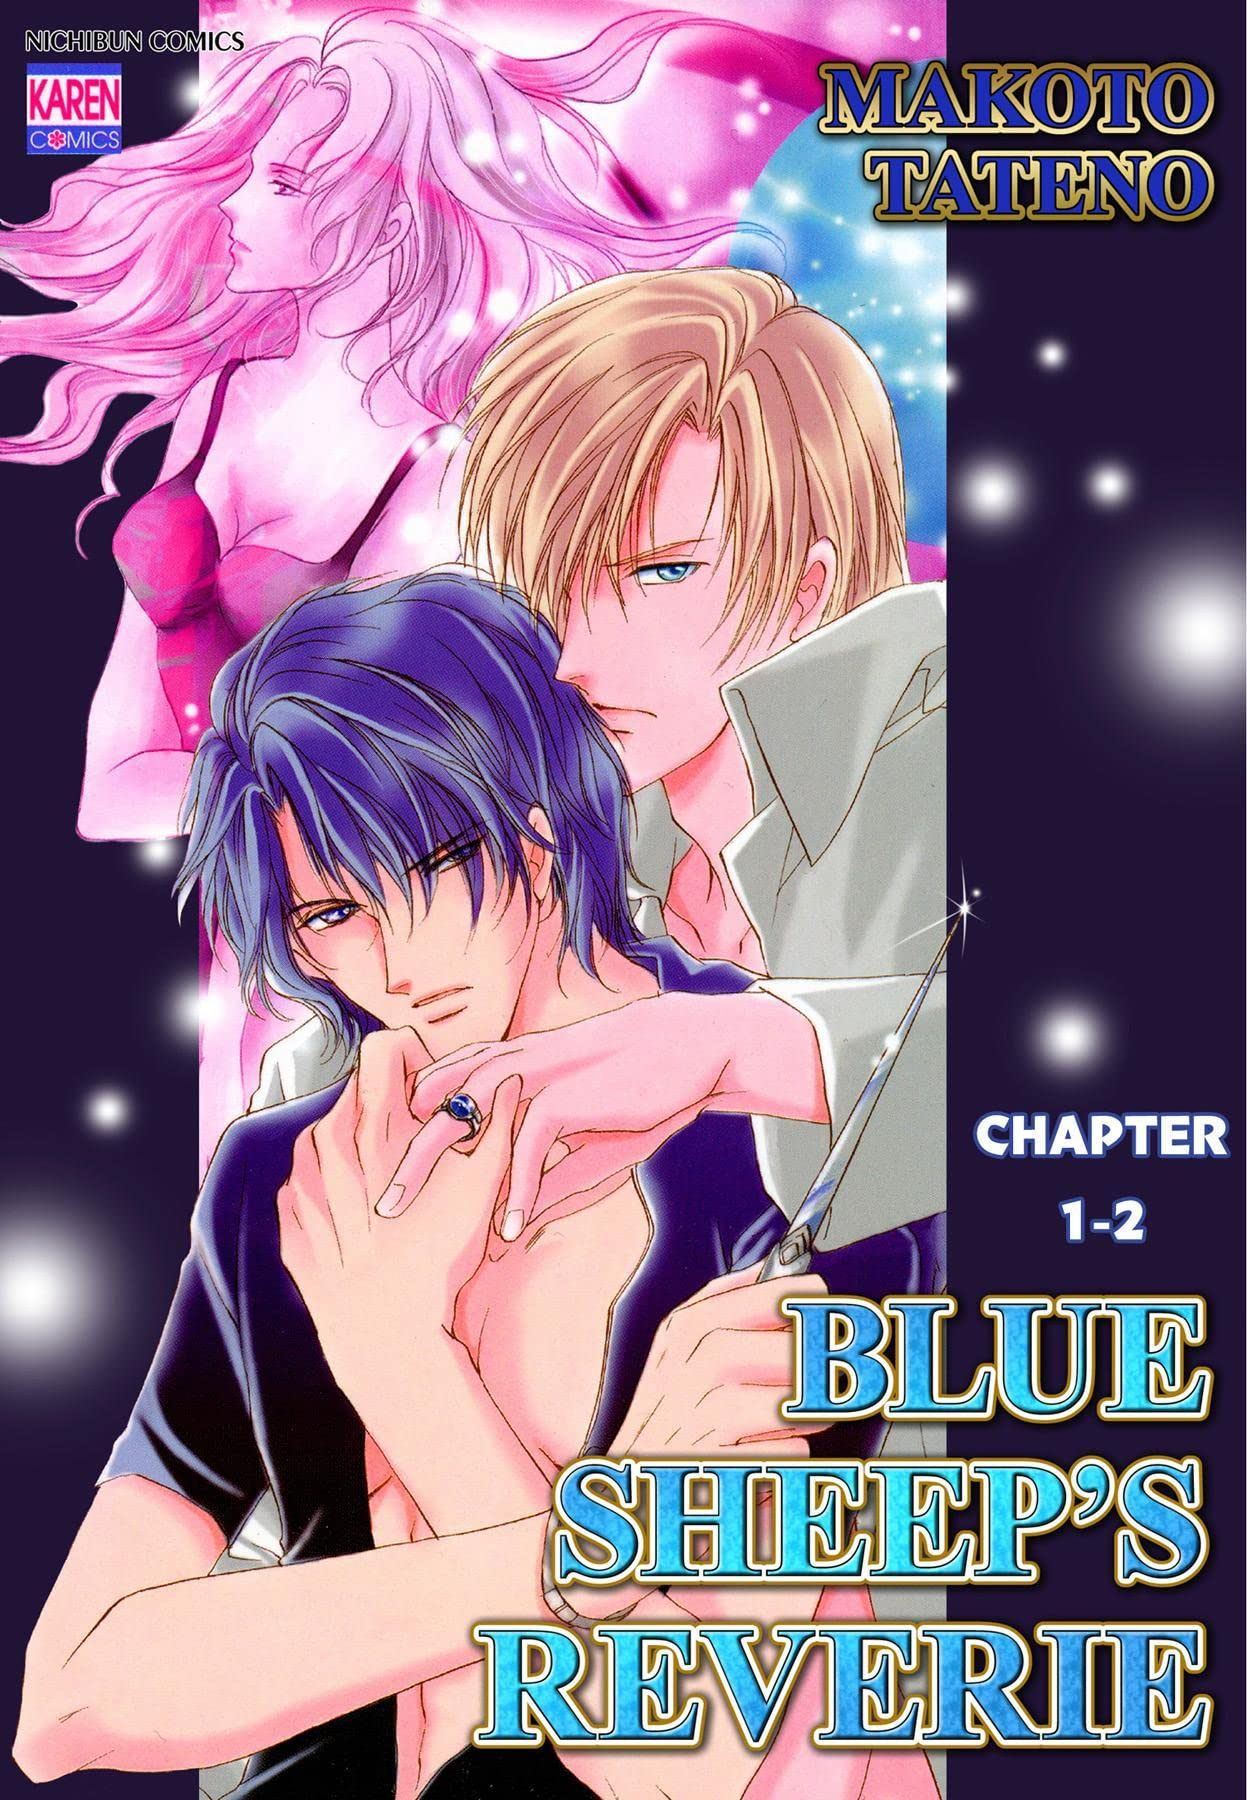 BLUE SHEEP'S REVERIE (Yaoi Manga) #2